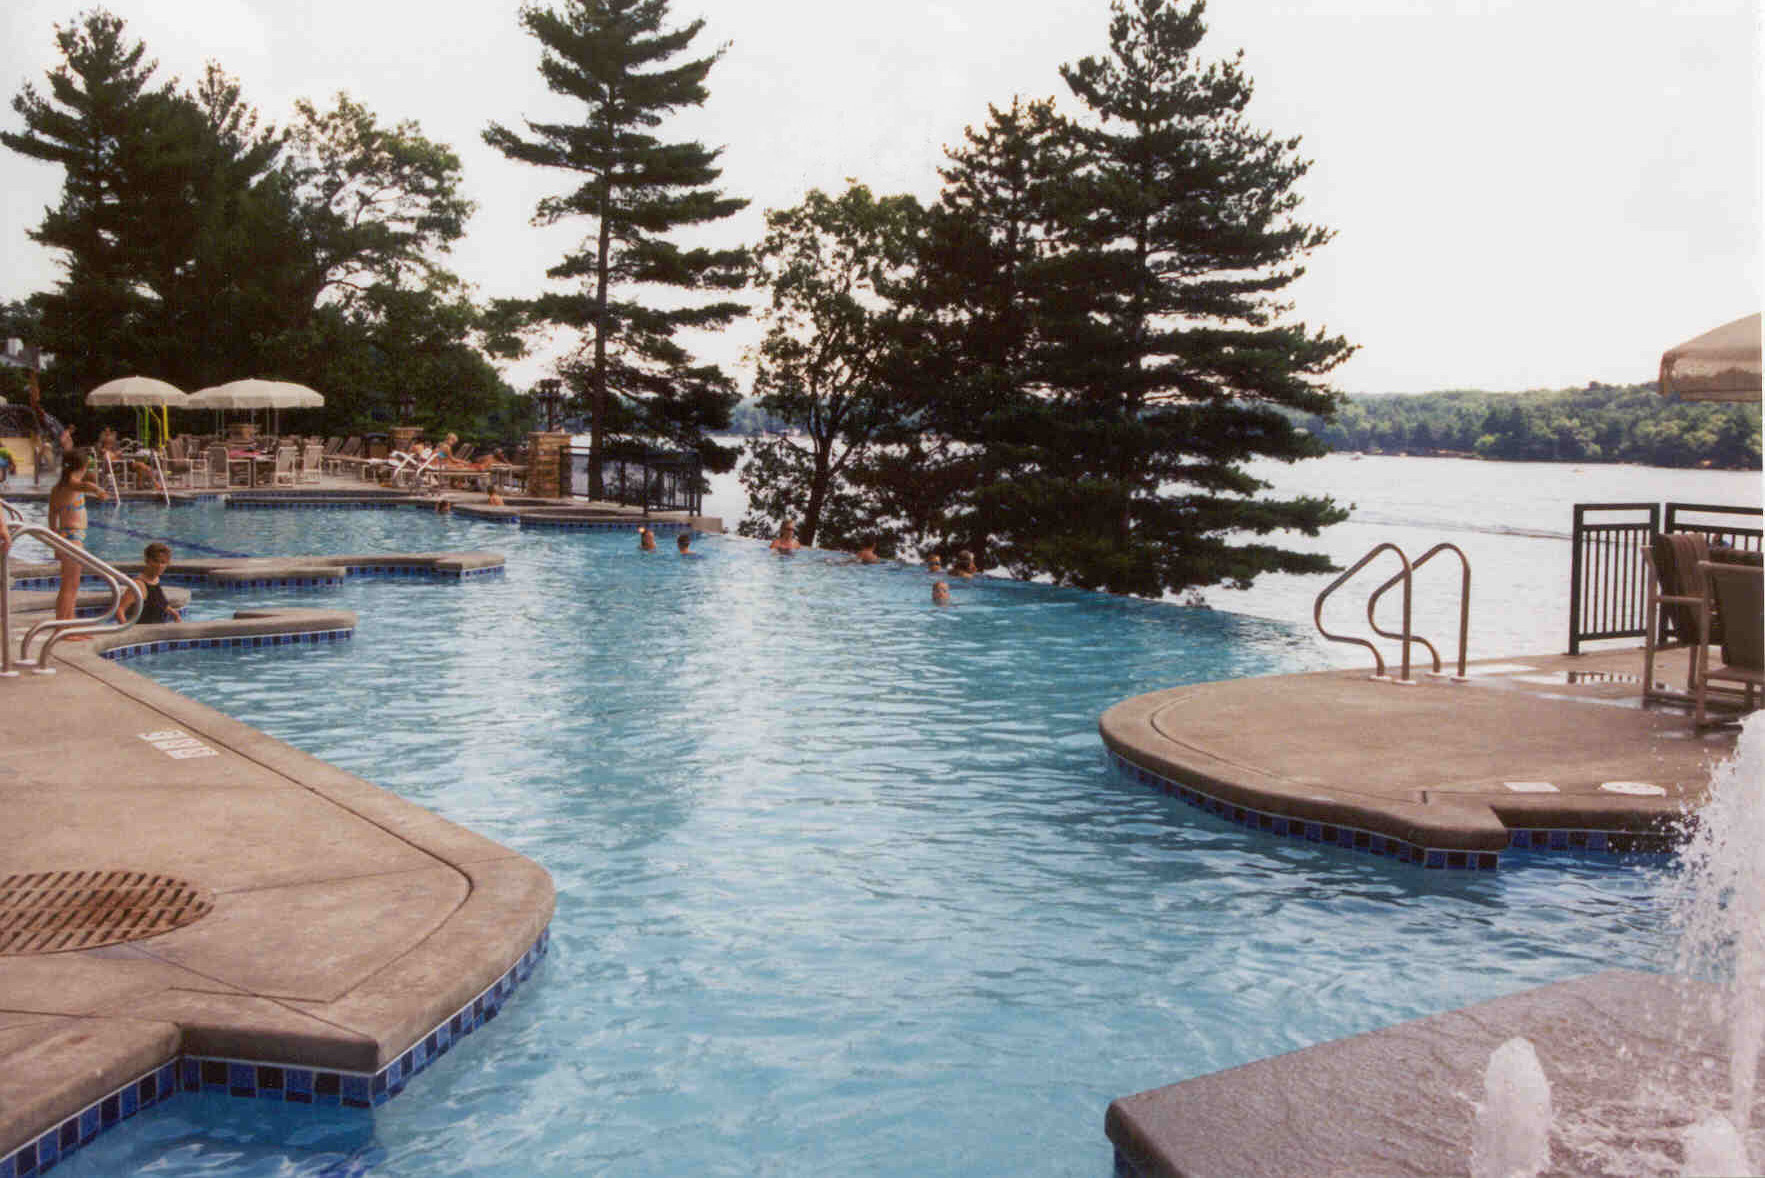 Outdoor pool area at the Wilderness on the Lake in Lake Delton, WI